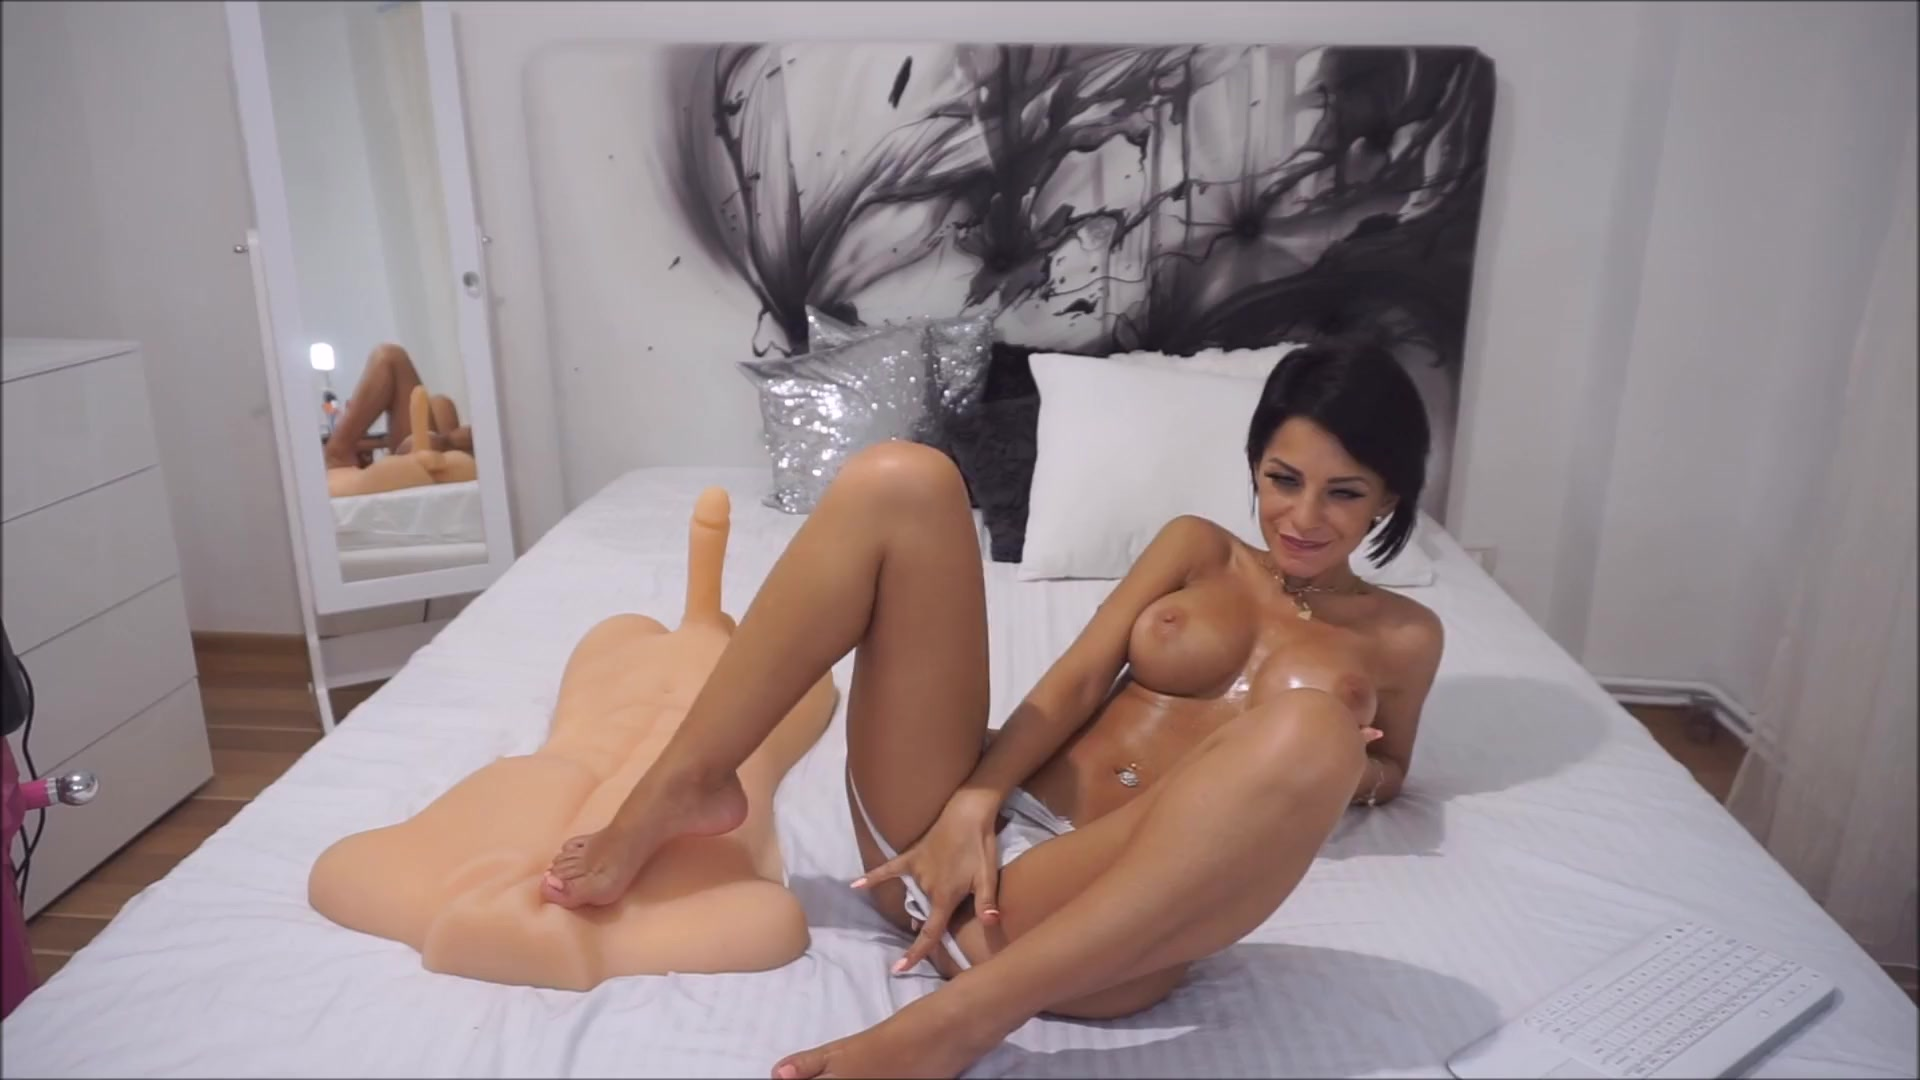 Anisyia livejasmin oil overload big tits huge ass perfect body 6